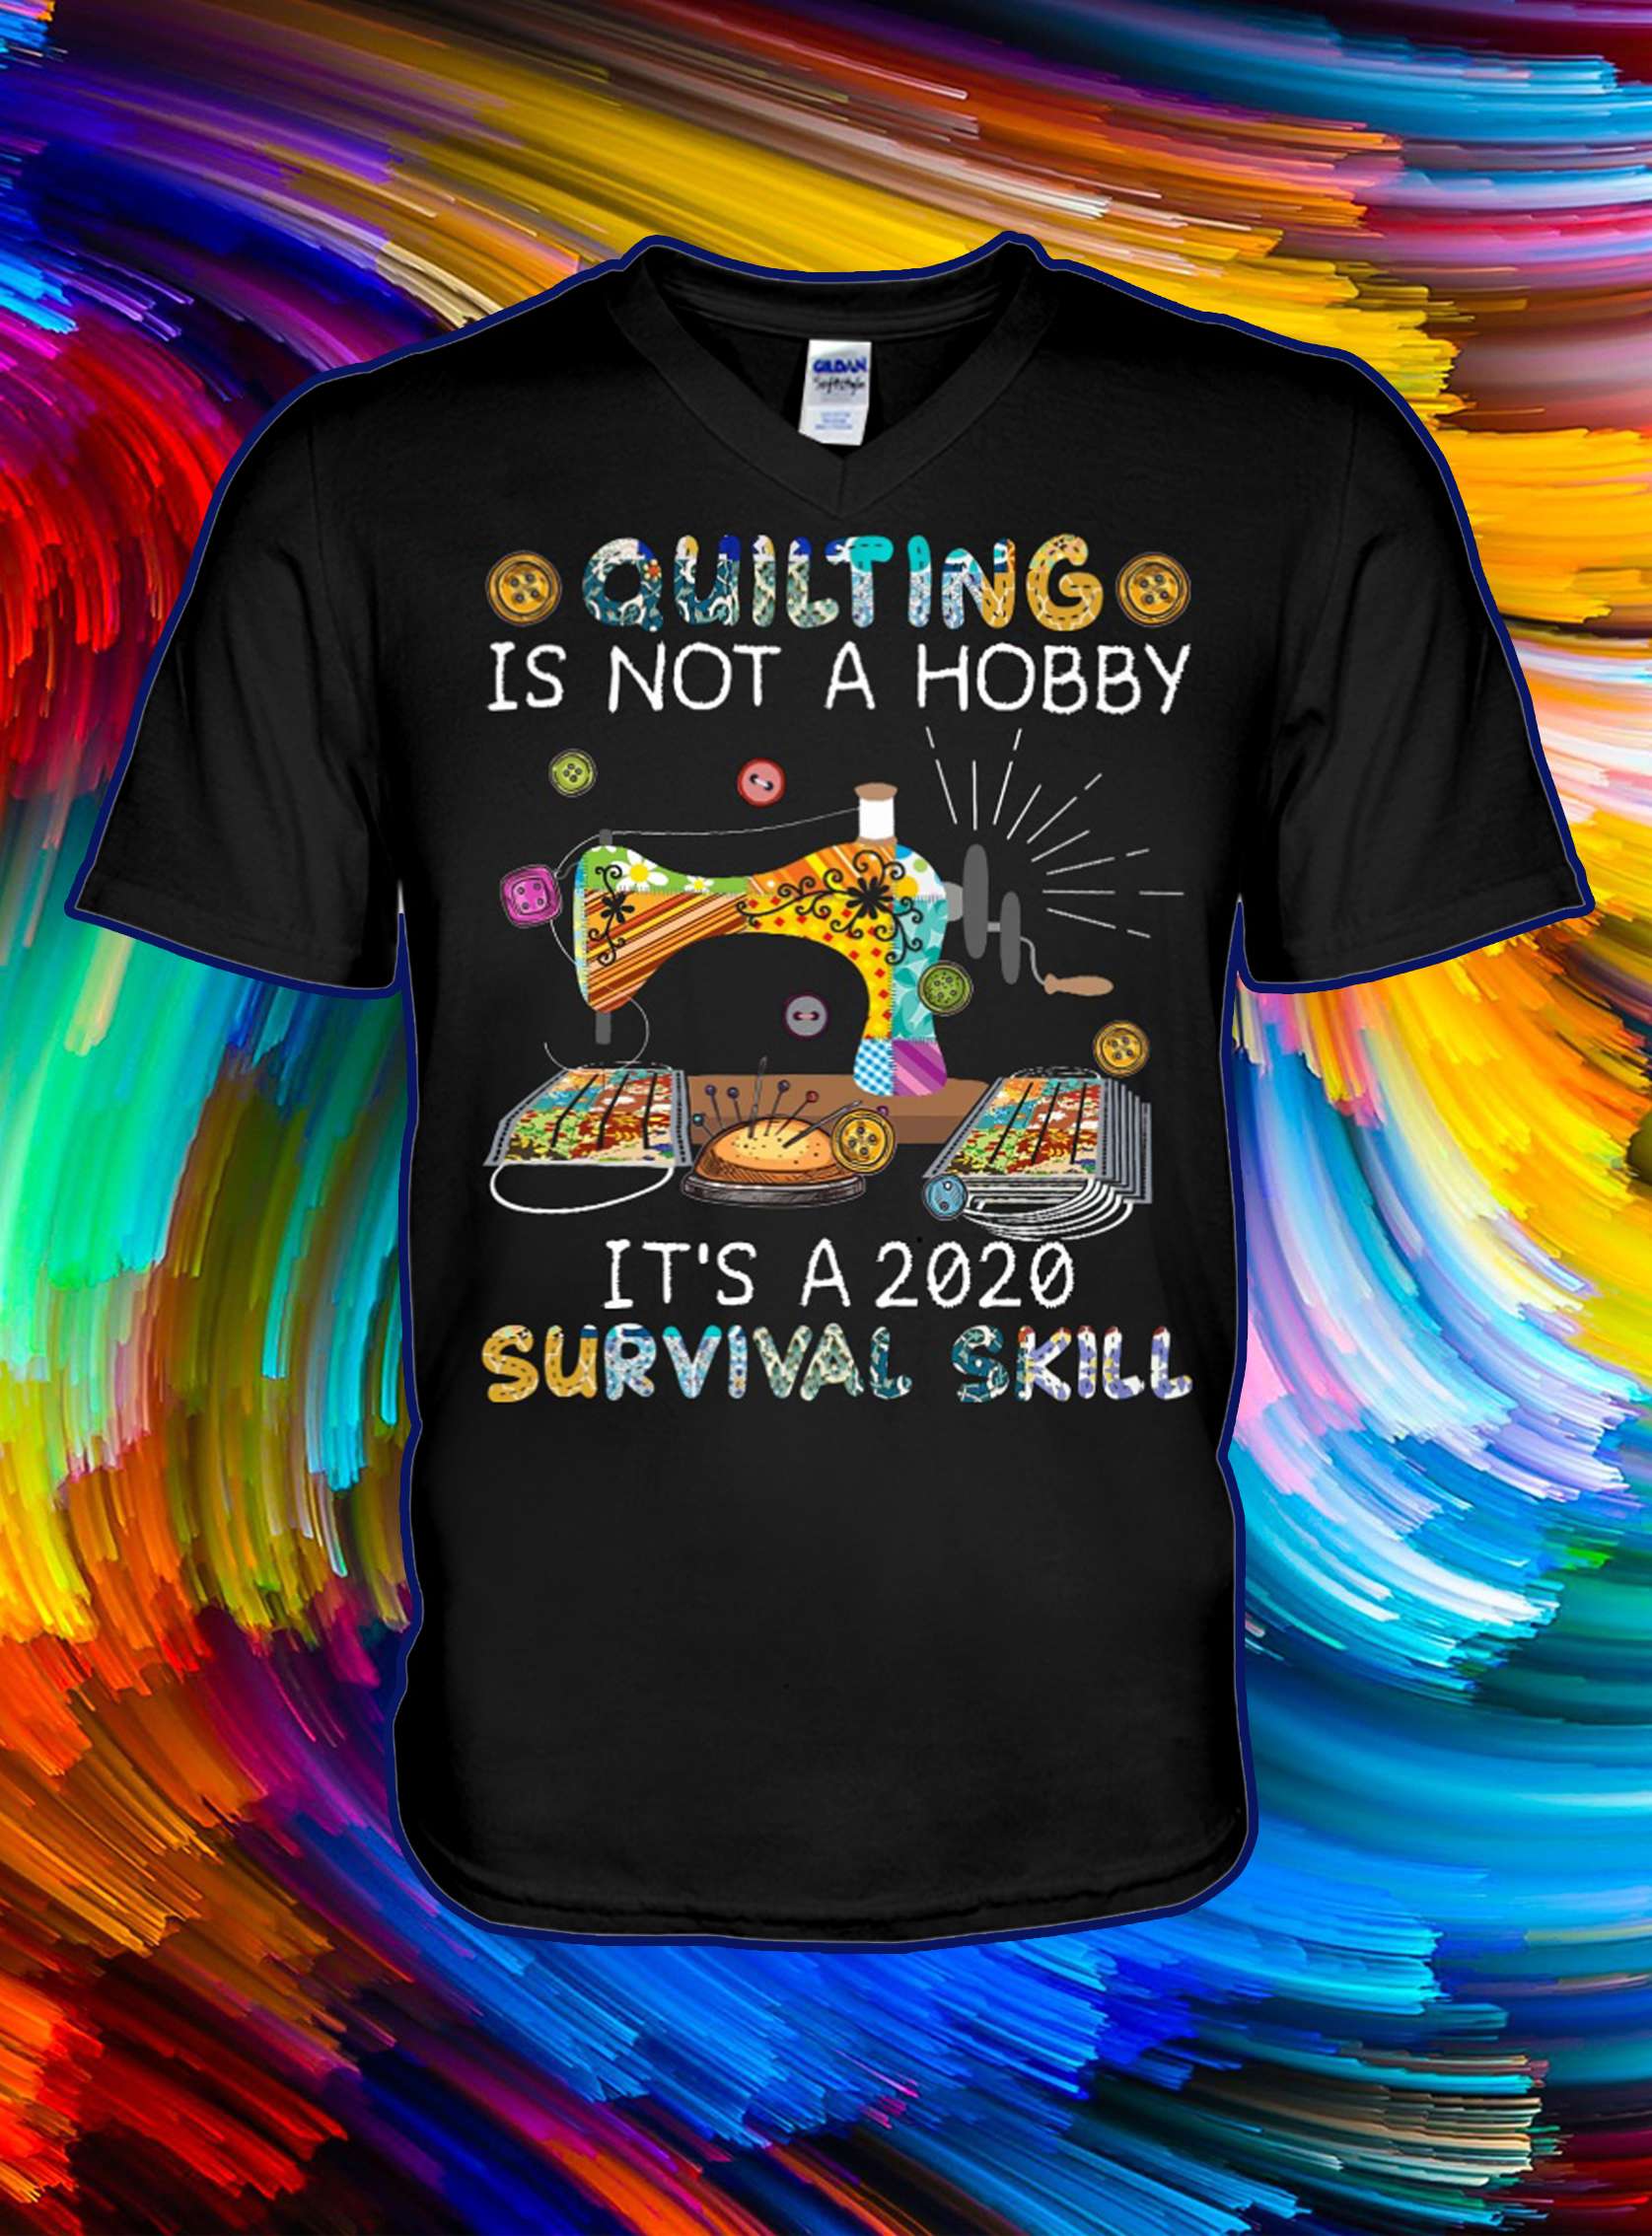 Quilting Is Not A Hobby It S A 2020 Survival Skill Shirt And Lady Shirt